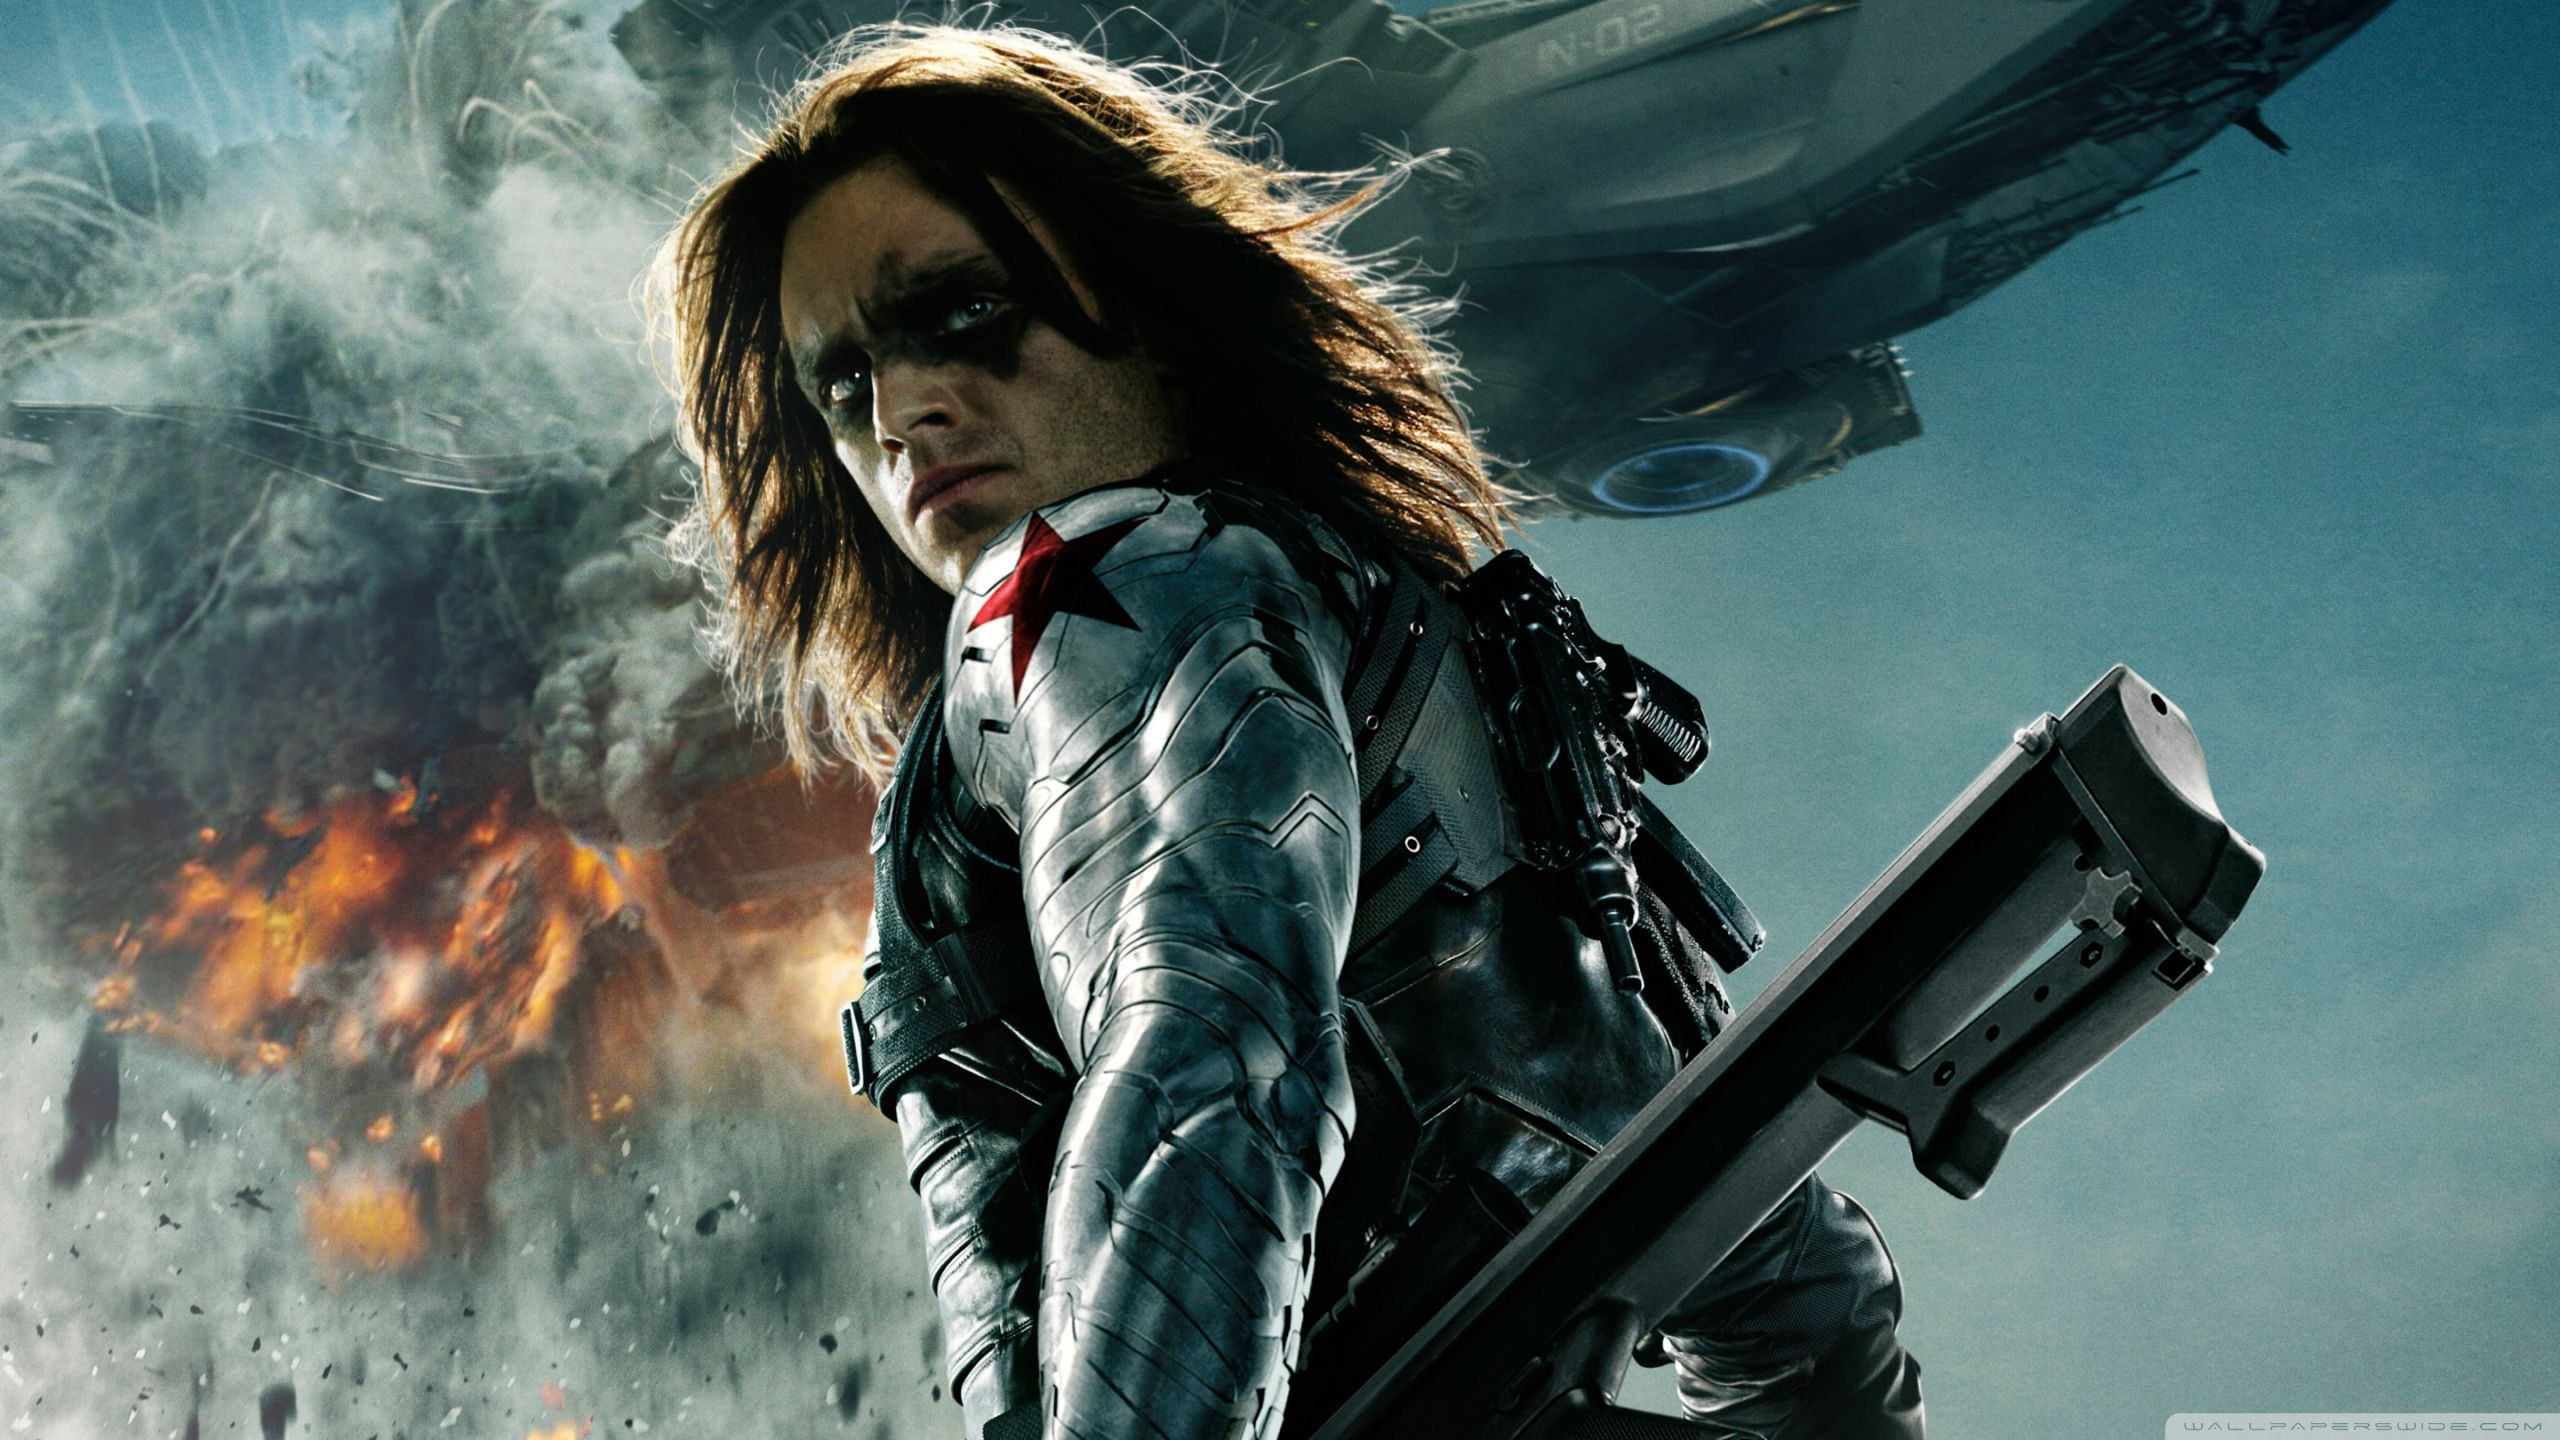 Winter Soldier Wallpapers Top Free Winter Soldier Backgrounds